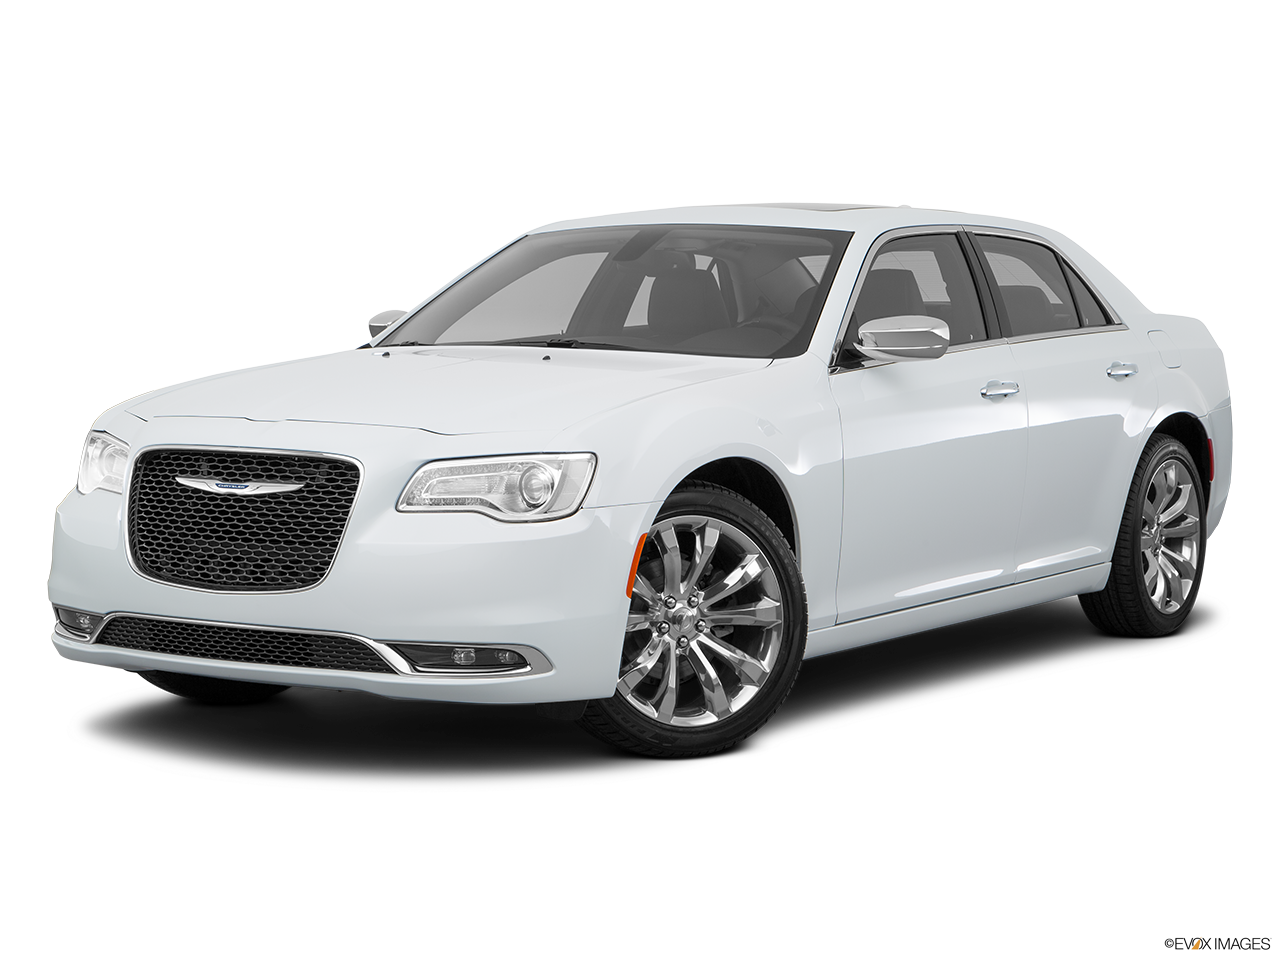 2016 Chrysler 300 #3